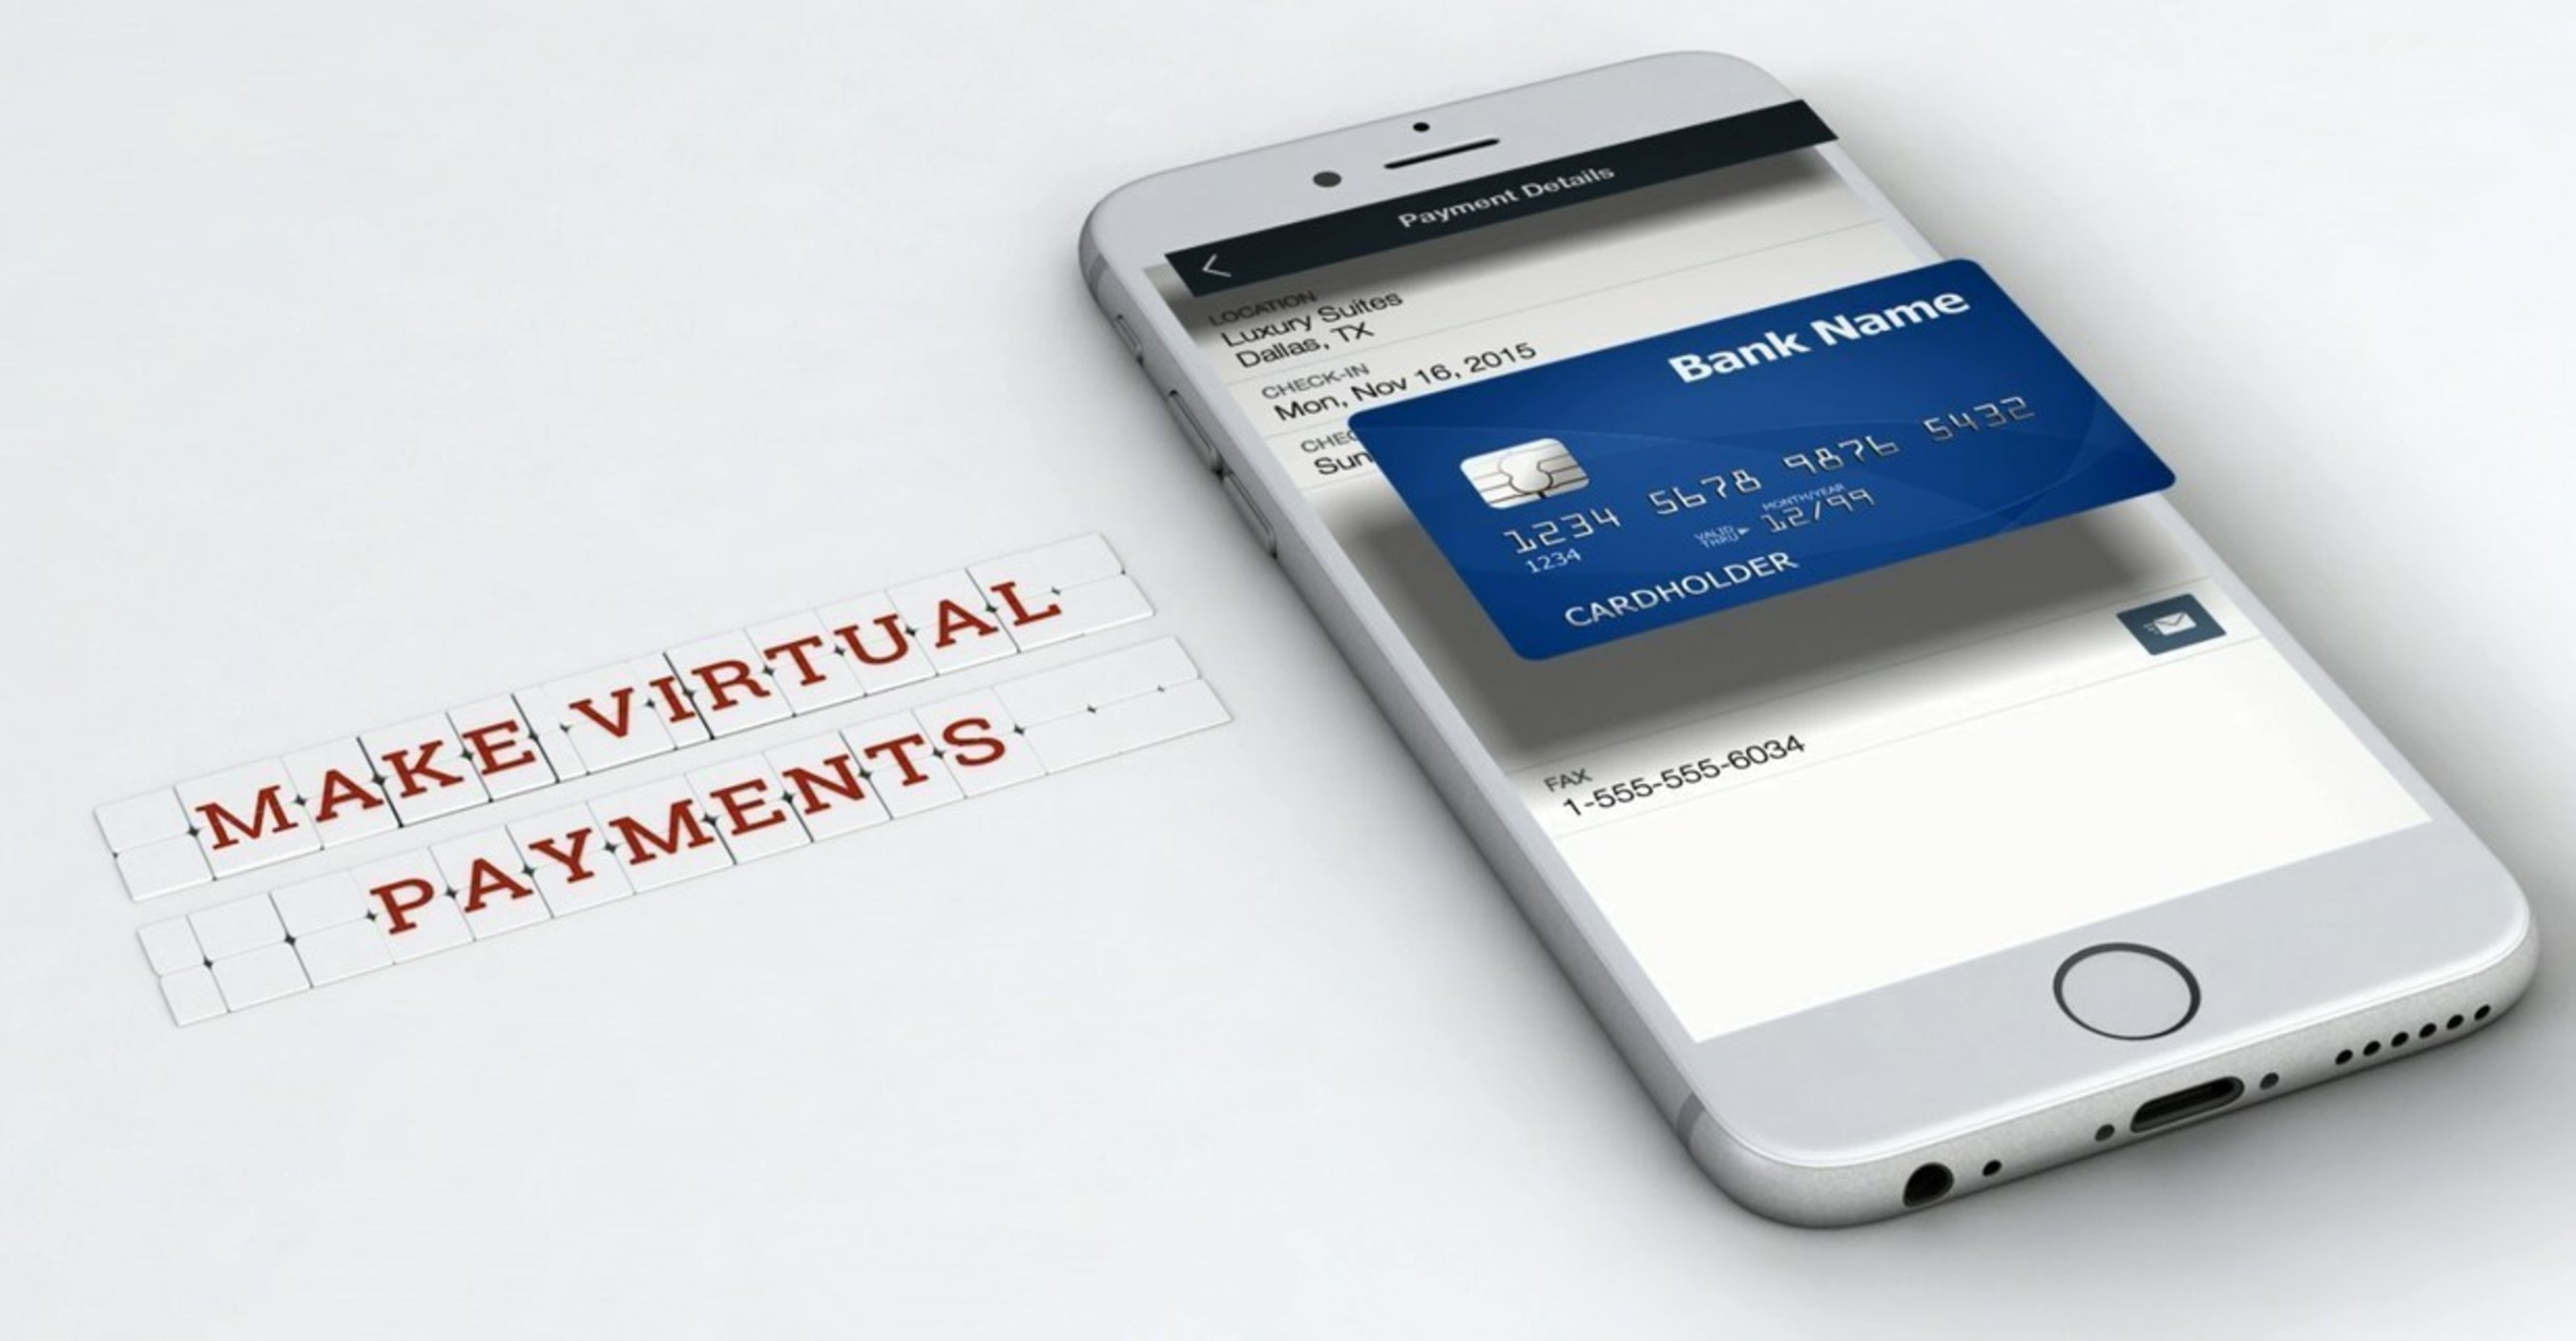 Sabre to integrate Chrome River's leading expense management solution into its new mobile platform for business travelers